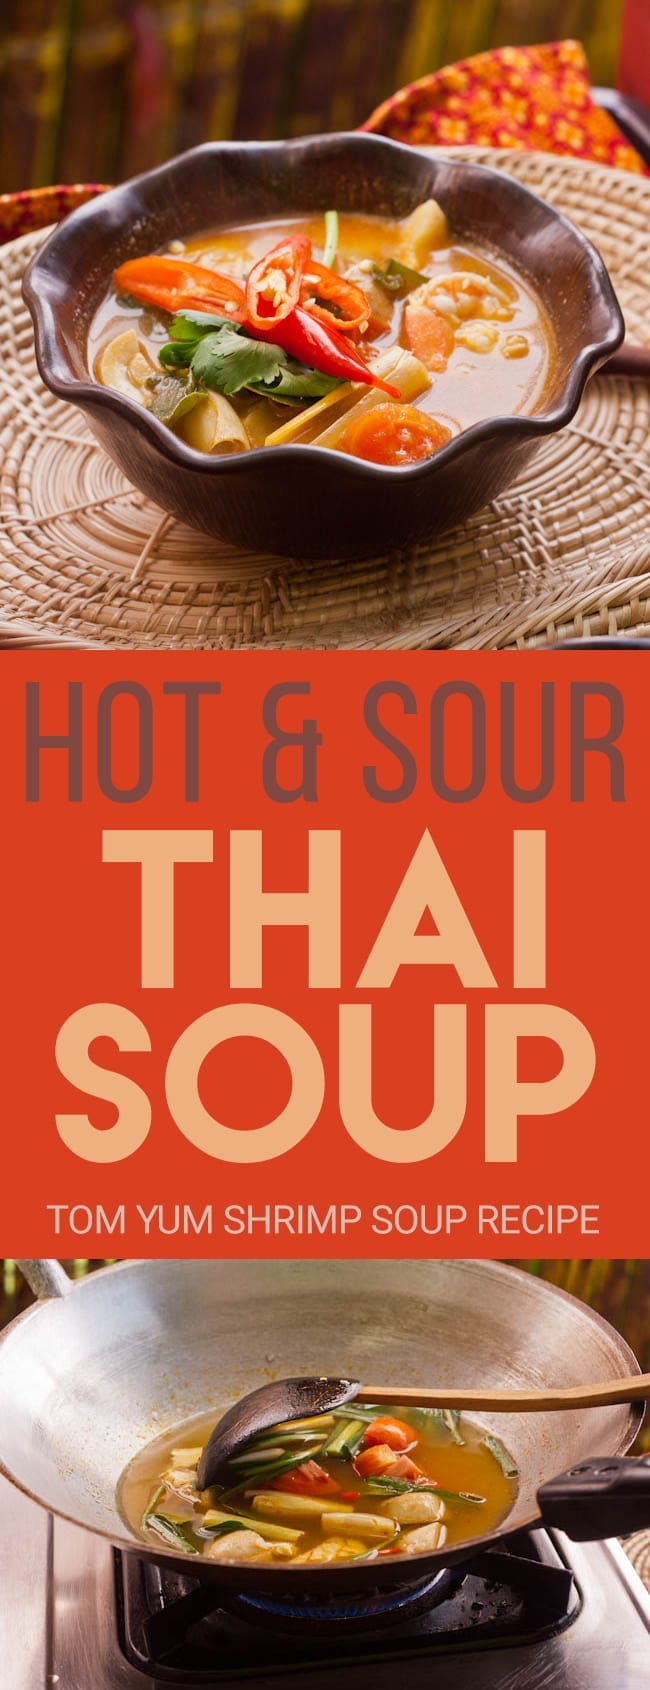 Tom Yum Shrimp Soup Recipe is the most famous and classic Thai hot and sour soup. It is spicy and just brimming with flavor and fragrant Thai ingredients. Easy to make and ready in minutes. A perfect starter to an Asian themed feast. Gluten Free & Dairy Free.